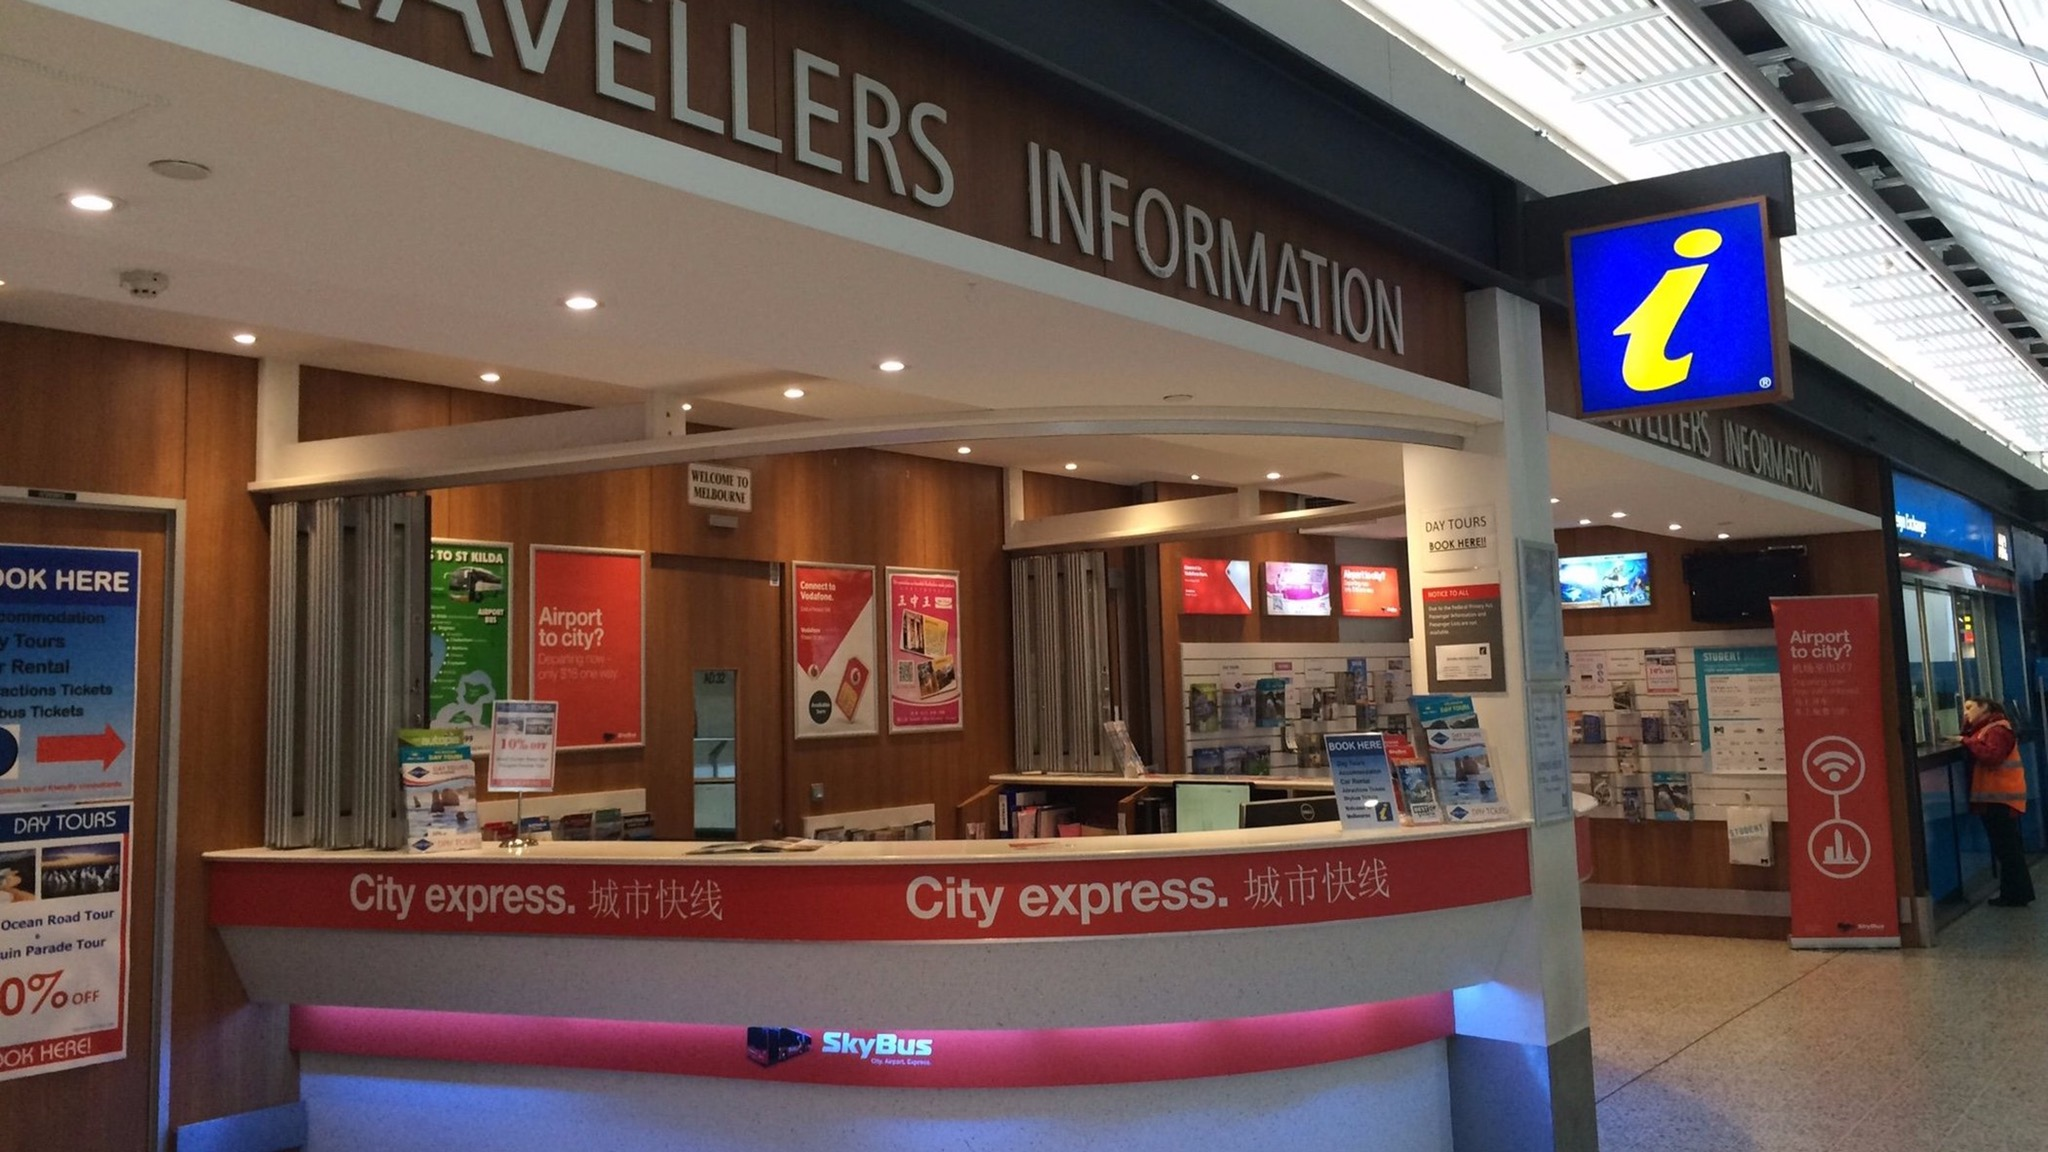 Melbourne Airport Visitor Information Centre